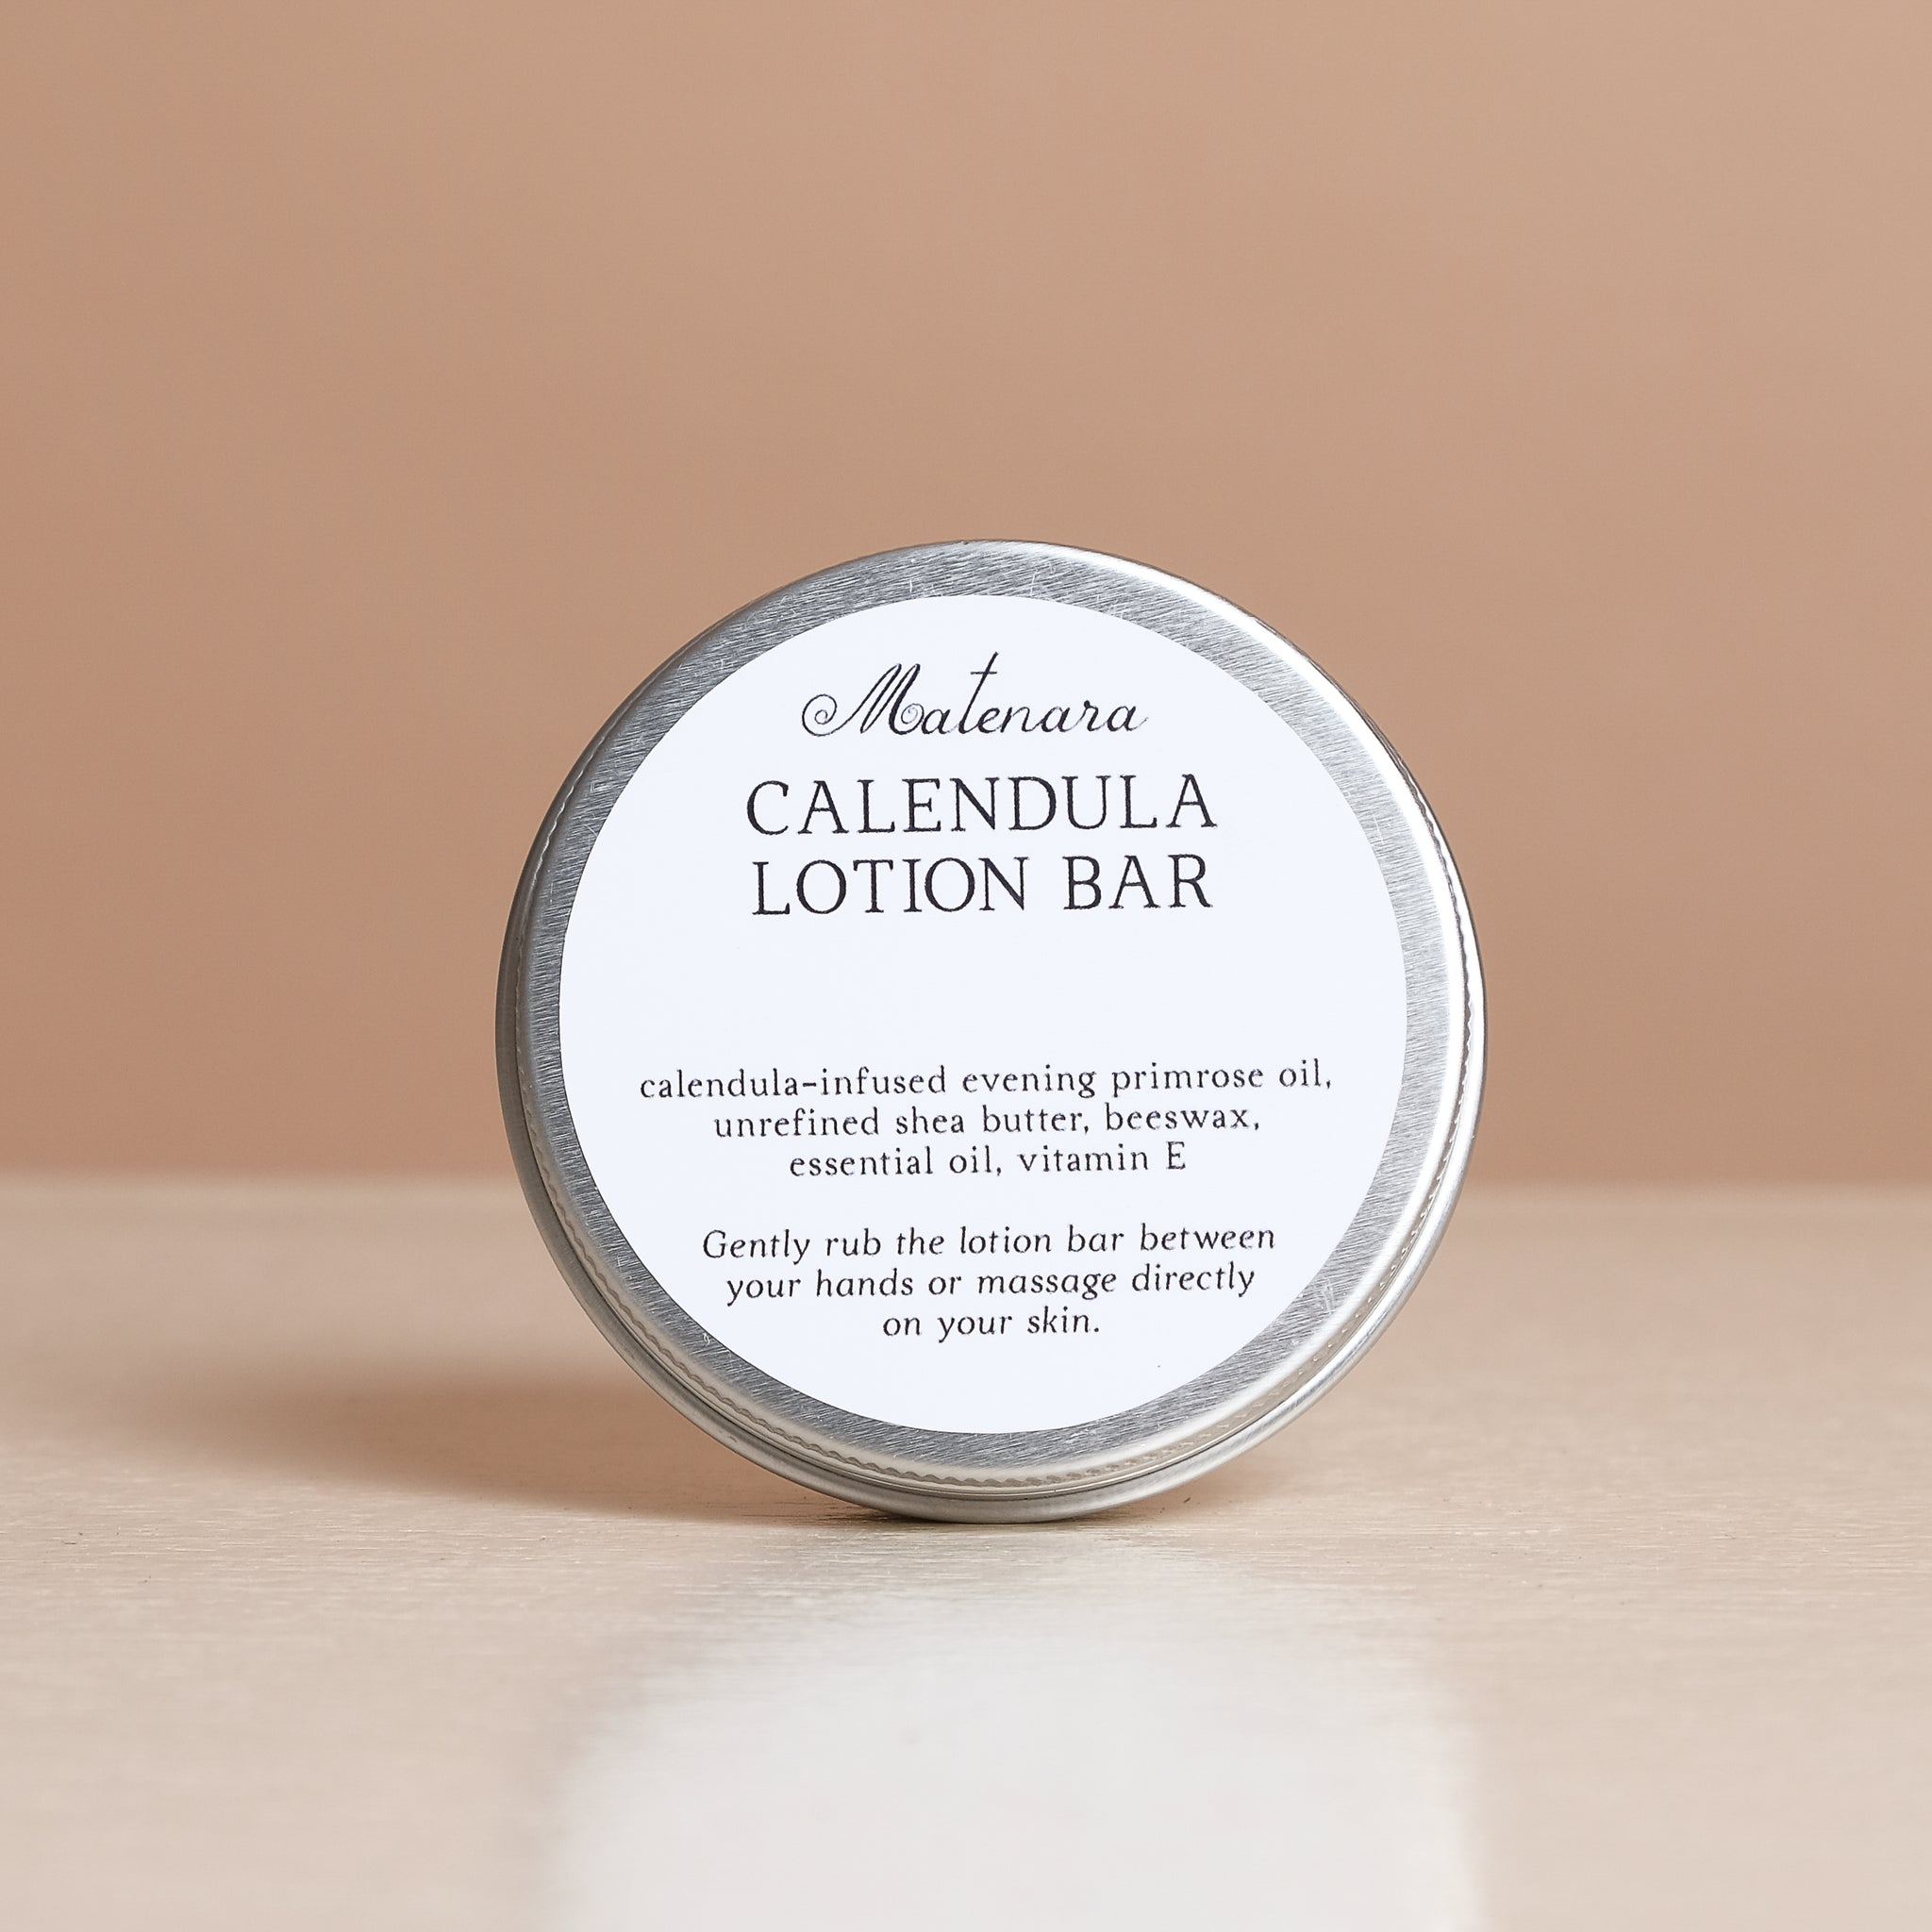 Calendula Lotion Bar